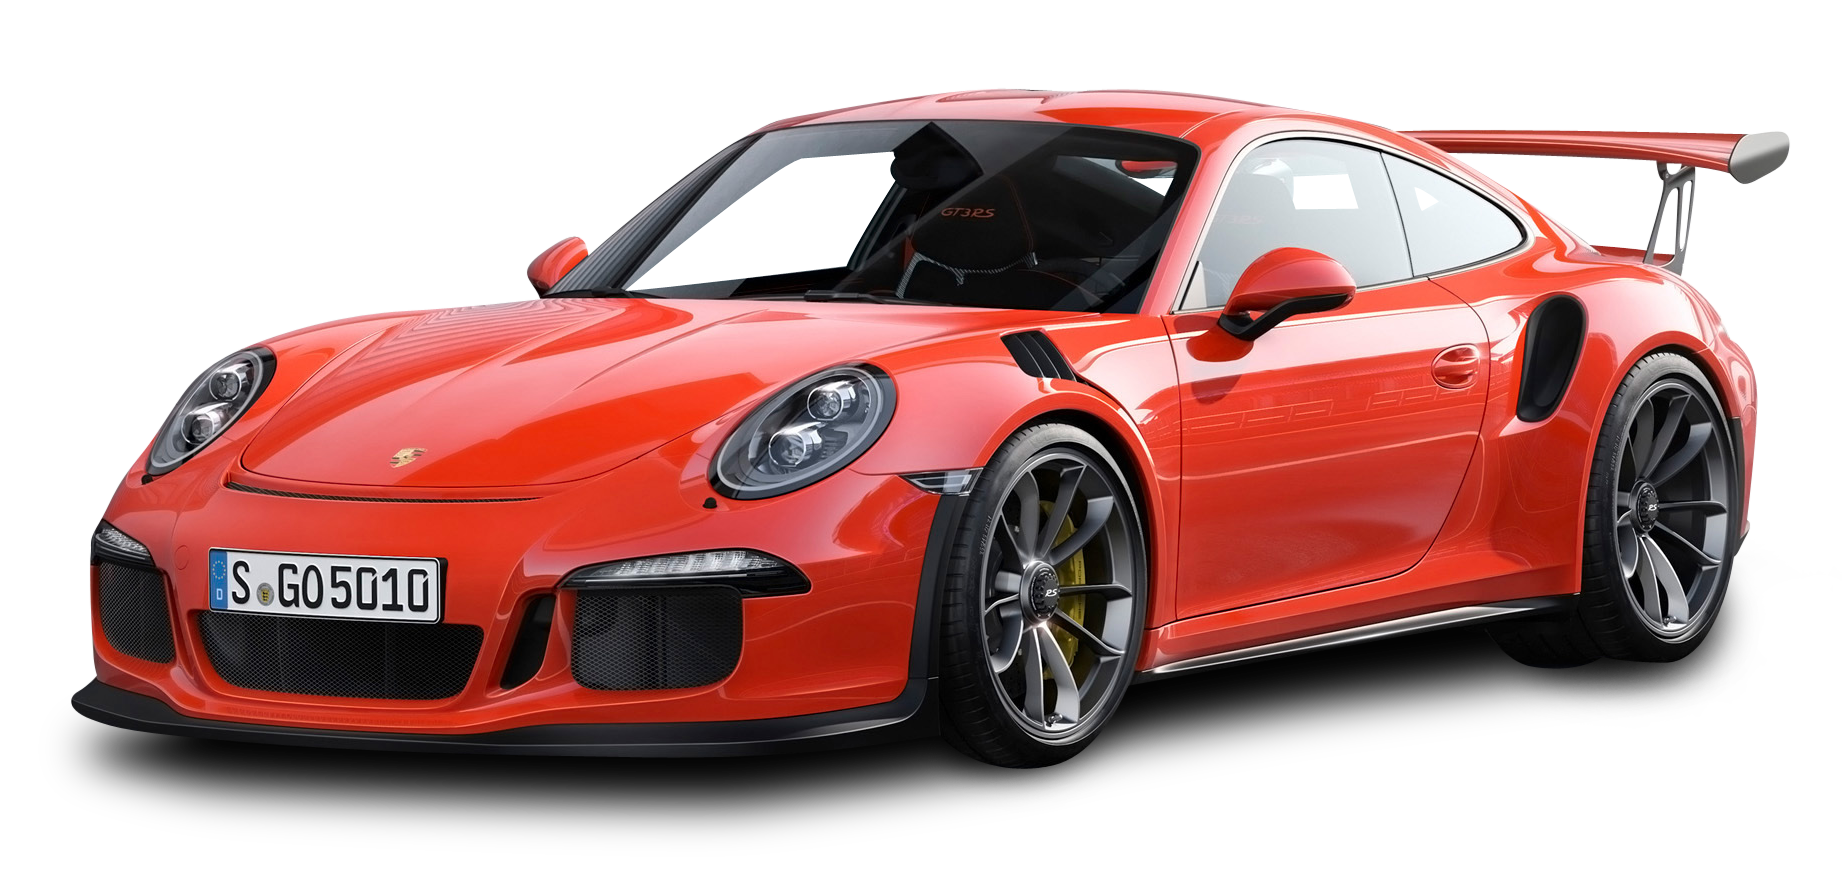 Red Porsche 911 GT3 RS 4 Car